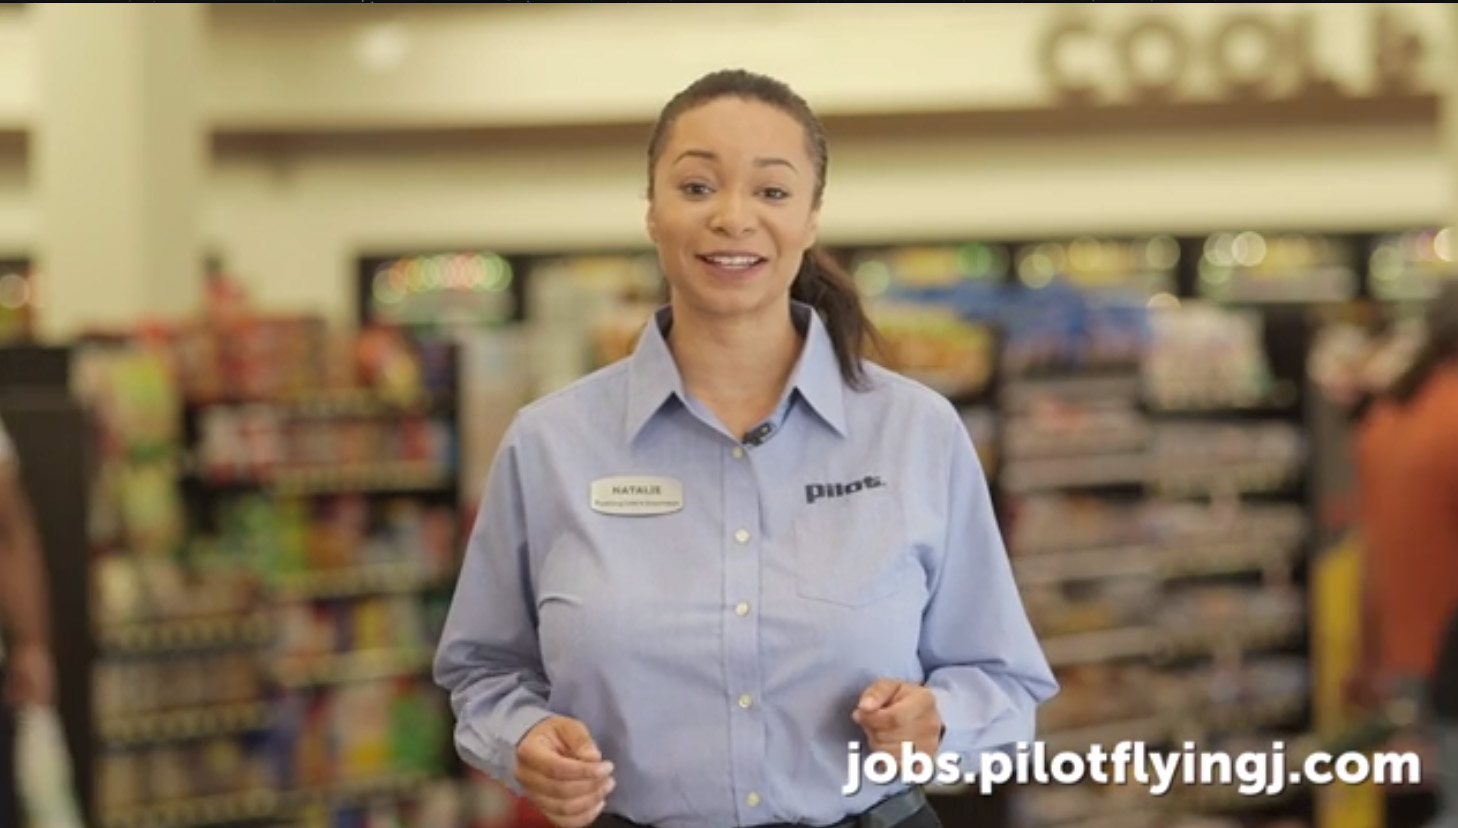 Pilot Flying J is seeking experienced Retail General Managers to oversee our high-volume retail facilities, providing excellent service to our team members and guests while achieving business objectives.